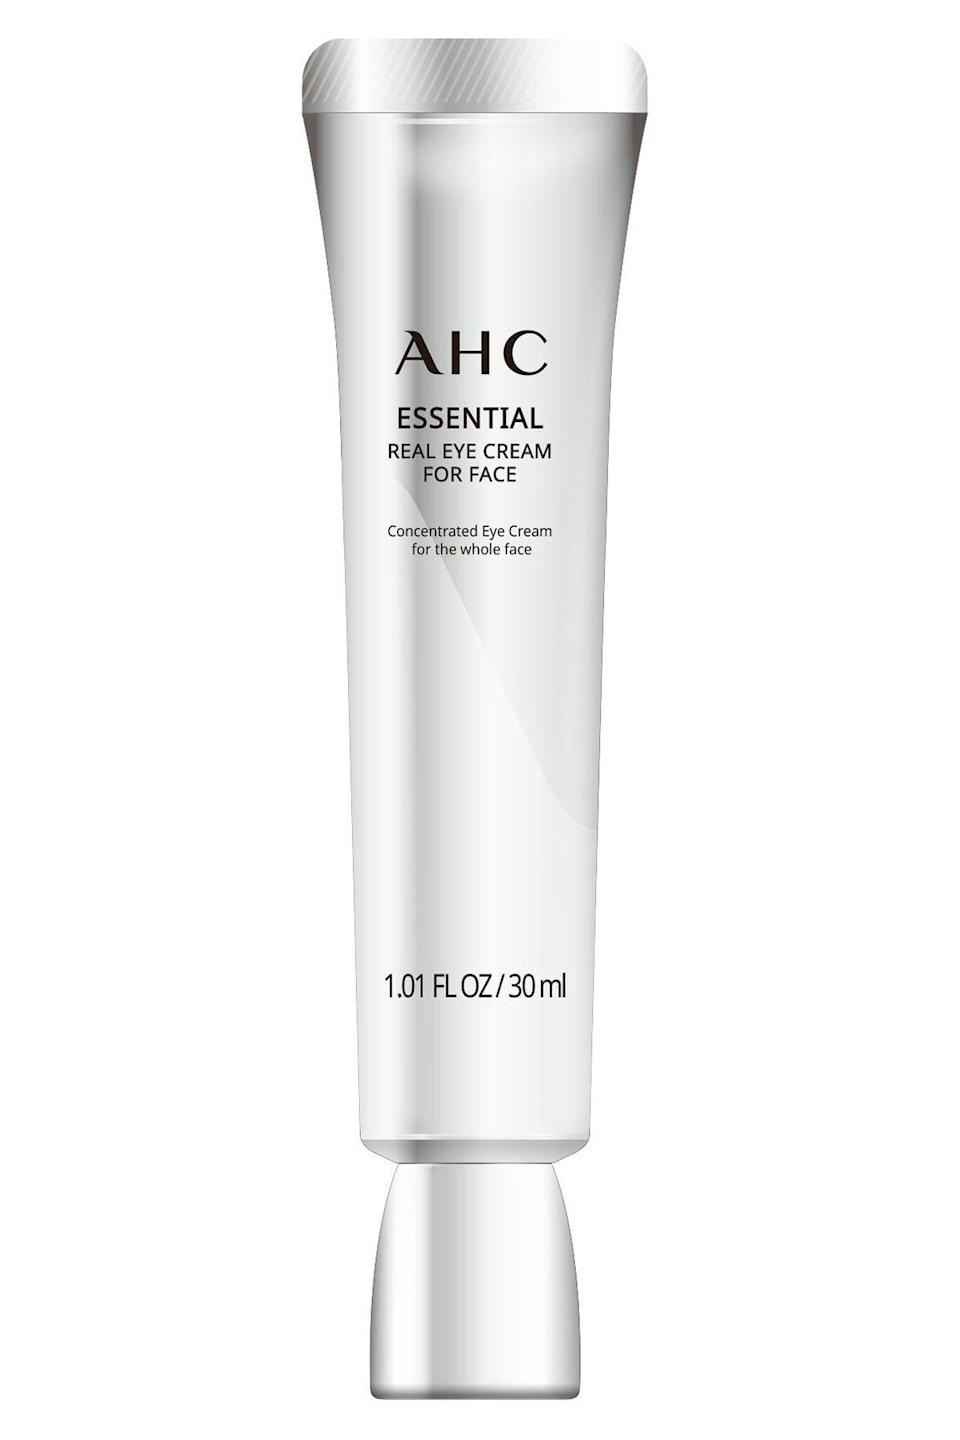 """<p><strong>AHC</strong></p><p>target.com</p><p><strong>$28.99</strong></p><p><a href=""""https://www.target.com/p/ahc-essential-eye-cream-1-01-fl-oz/-/A-76153603"""" rel=""""nofollow noopener"""" target=""""_blank"""" data-ylk=""""slk:SHOP NOW"""" class=""""link rapid-noclick-resp"""">SHOP NOW</a></p><p>If your girl is into K-beauty, they'll freak when they see this multitasking eye cream. It's hydrating, brightening, and light enough to slather all over the face.<br></p>"""